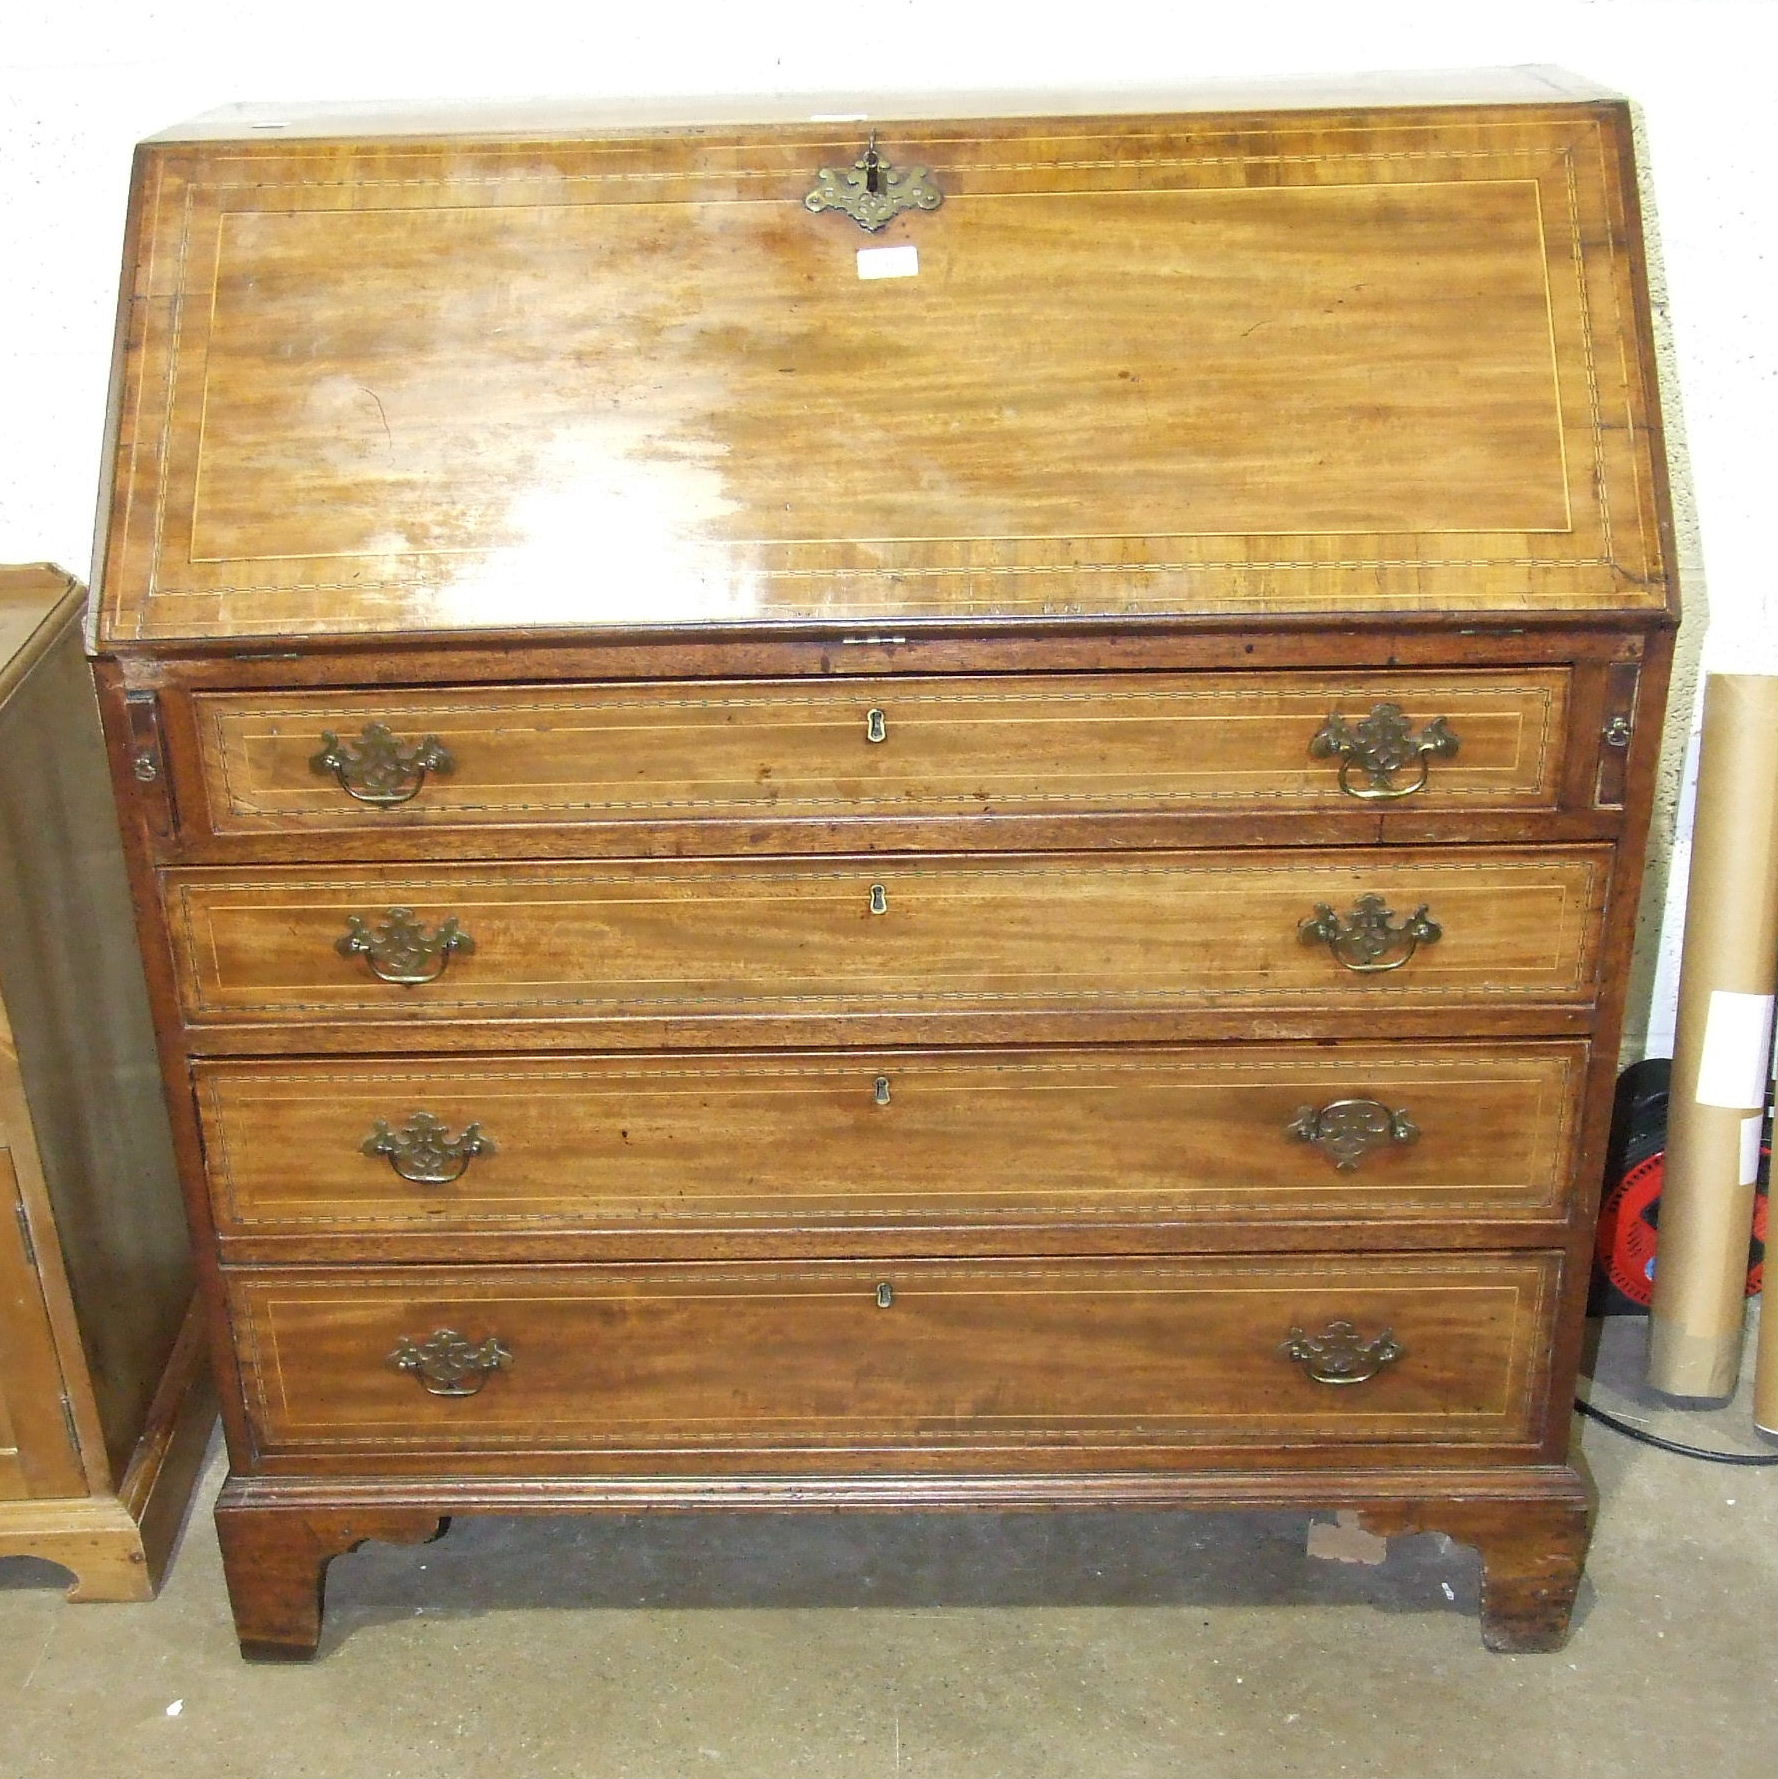 Lot 18 - A Georgian inlaid mahogany bureau, the fall front opening to reveal drawers and pigeon holes,